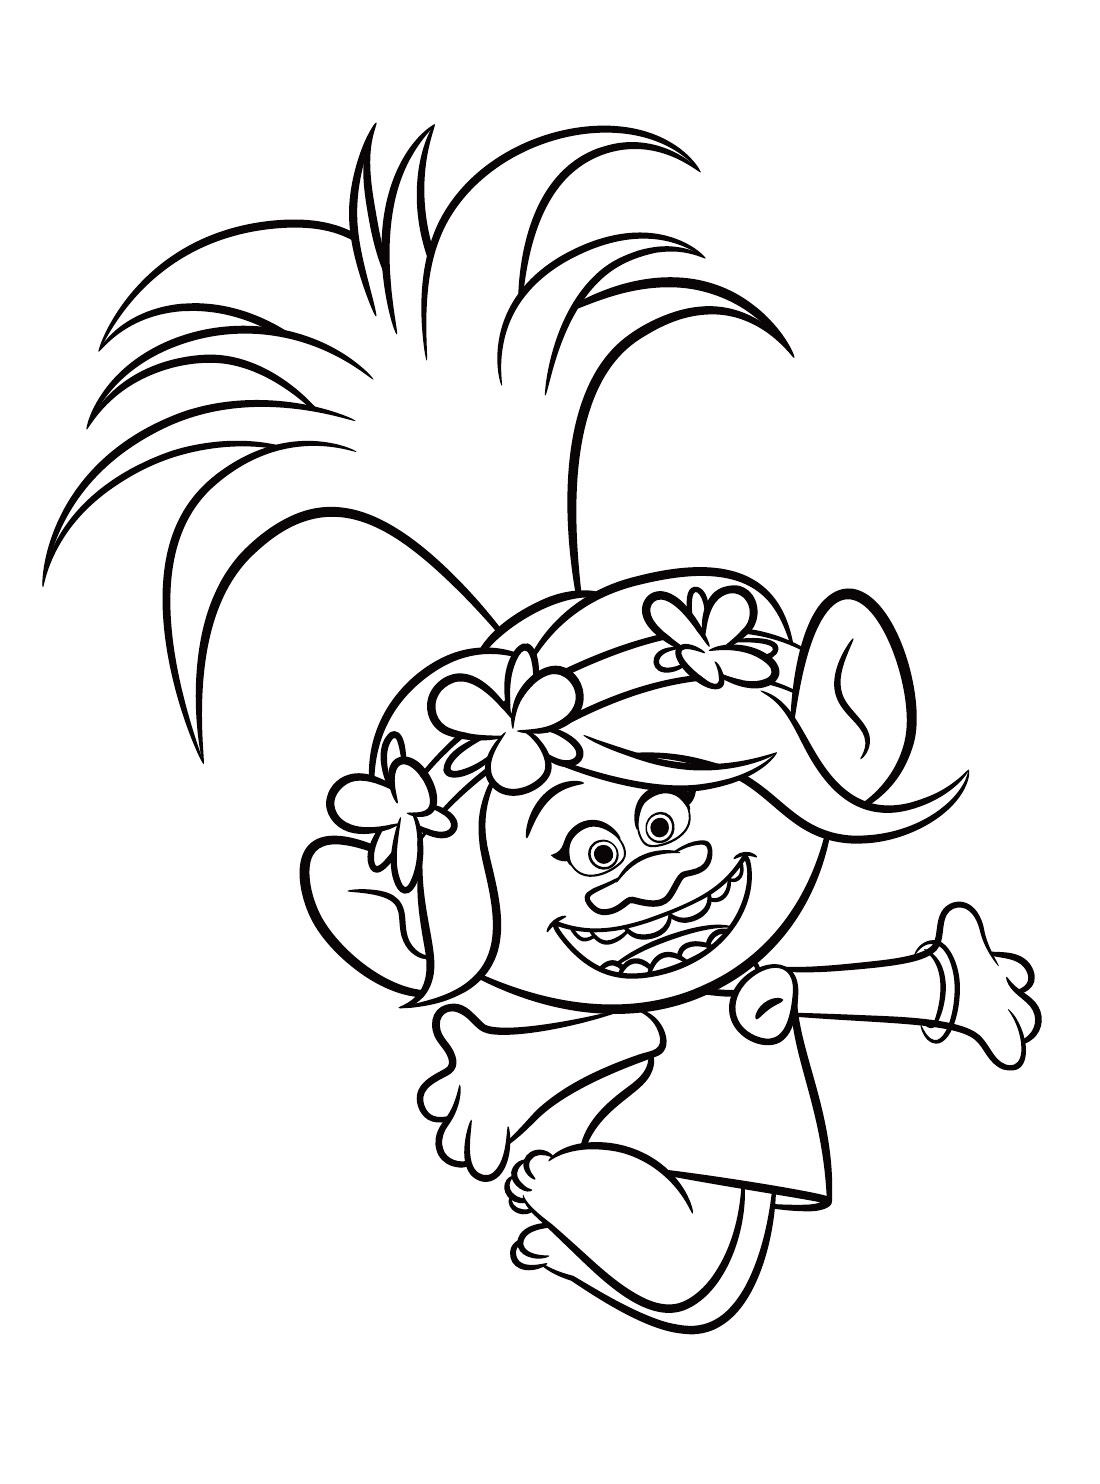 Trolls Movie Coloring Pages Poppy Coloring Page Disney Coloring